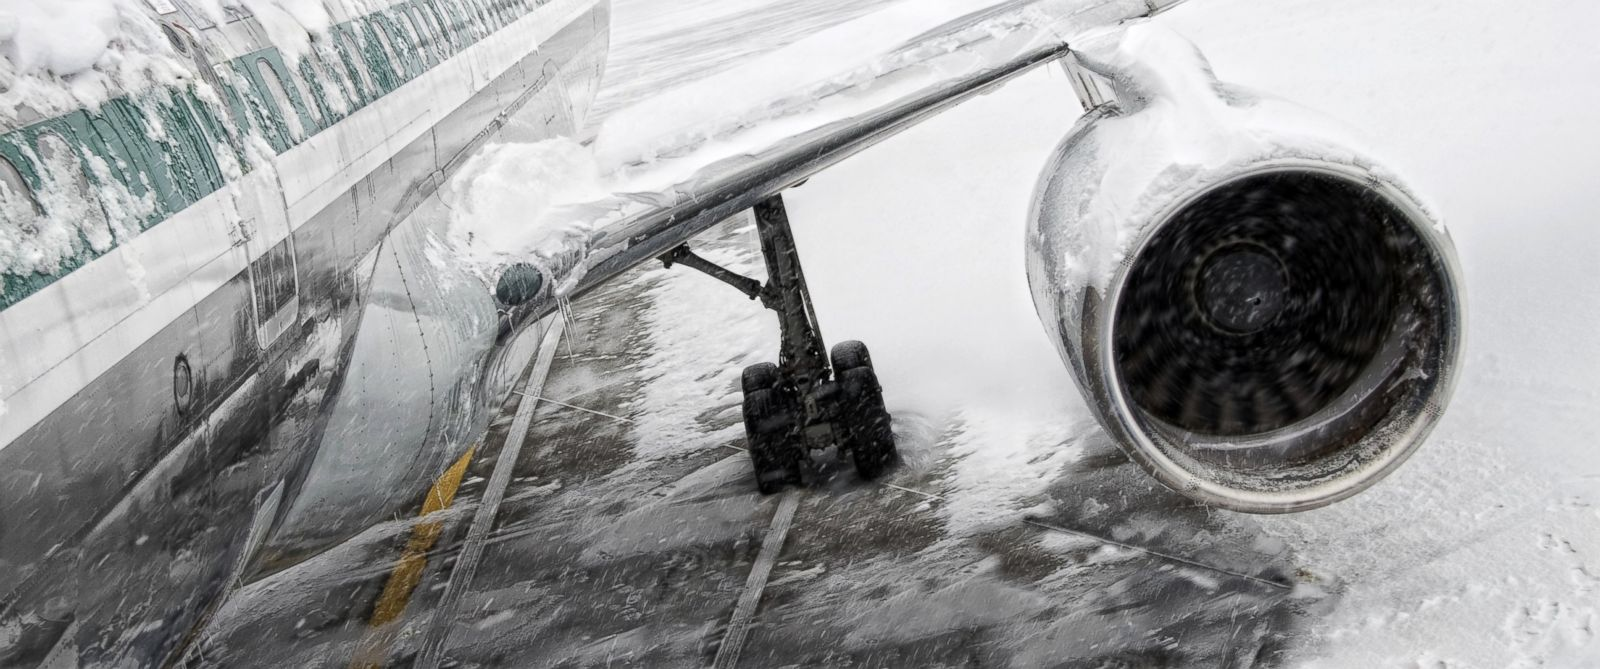 PHOTO: A plane is seen in the snow in this file photo.